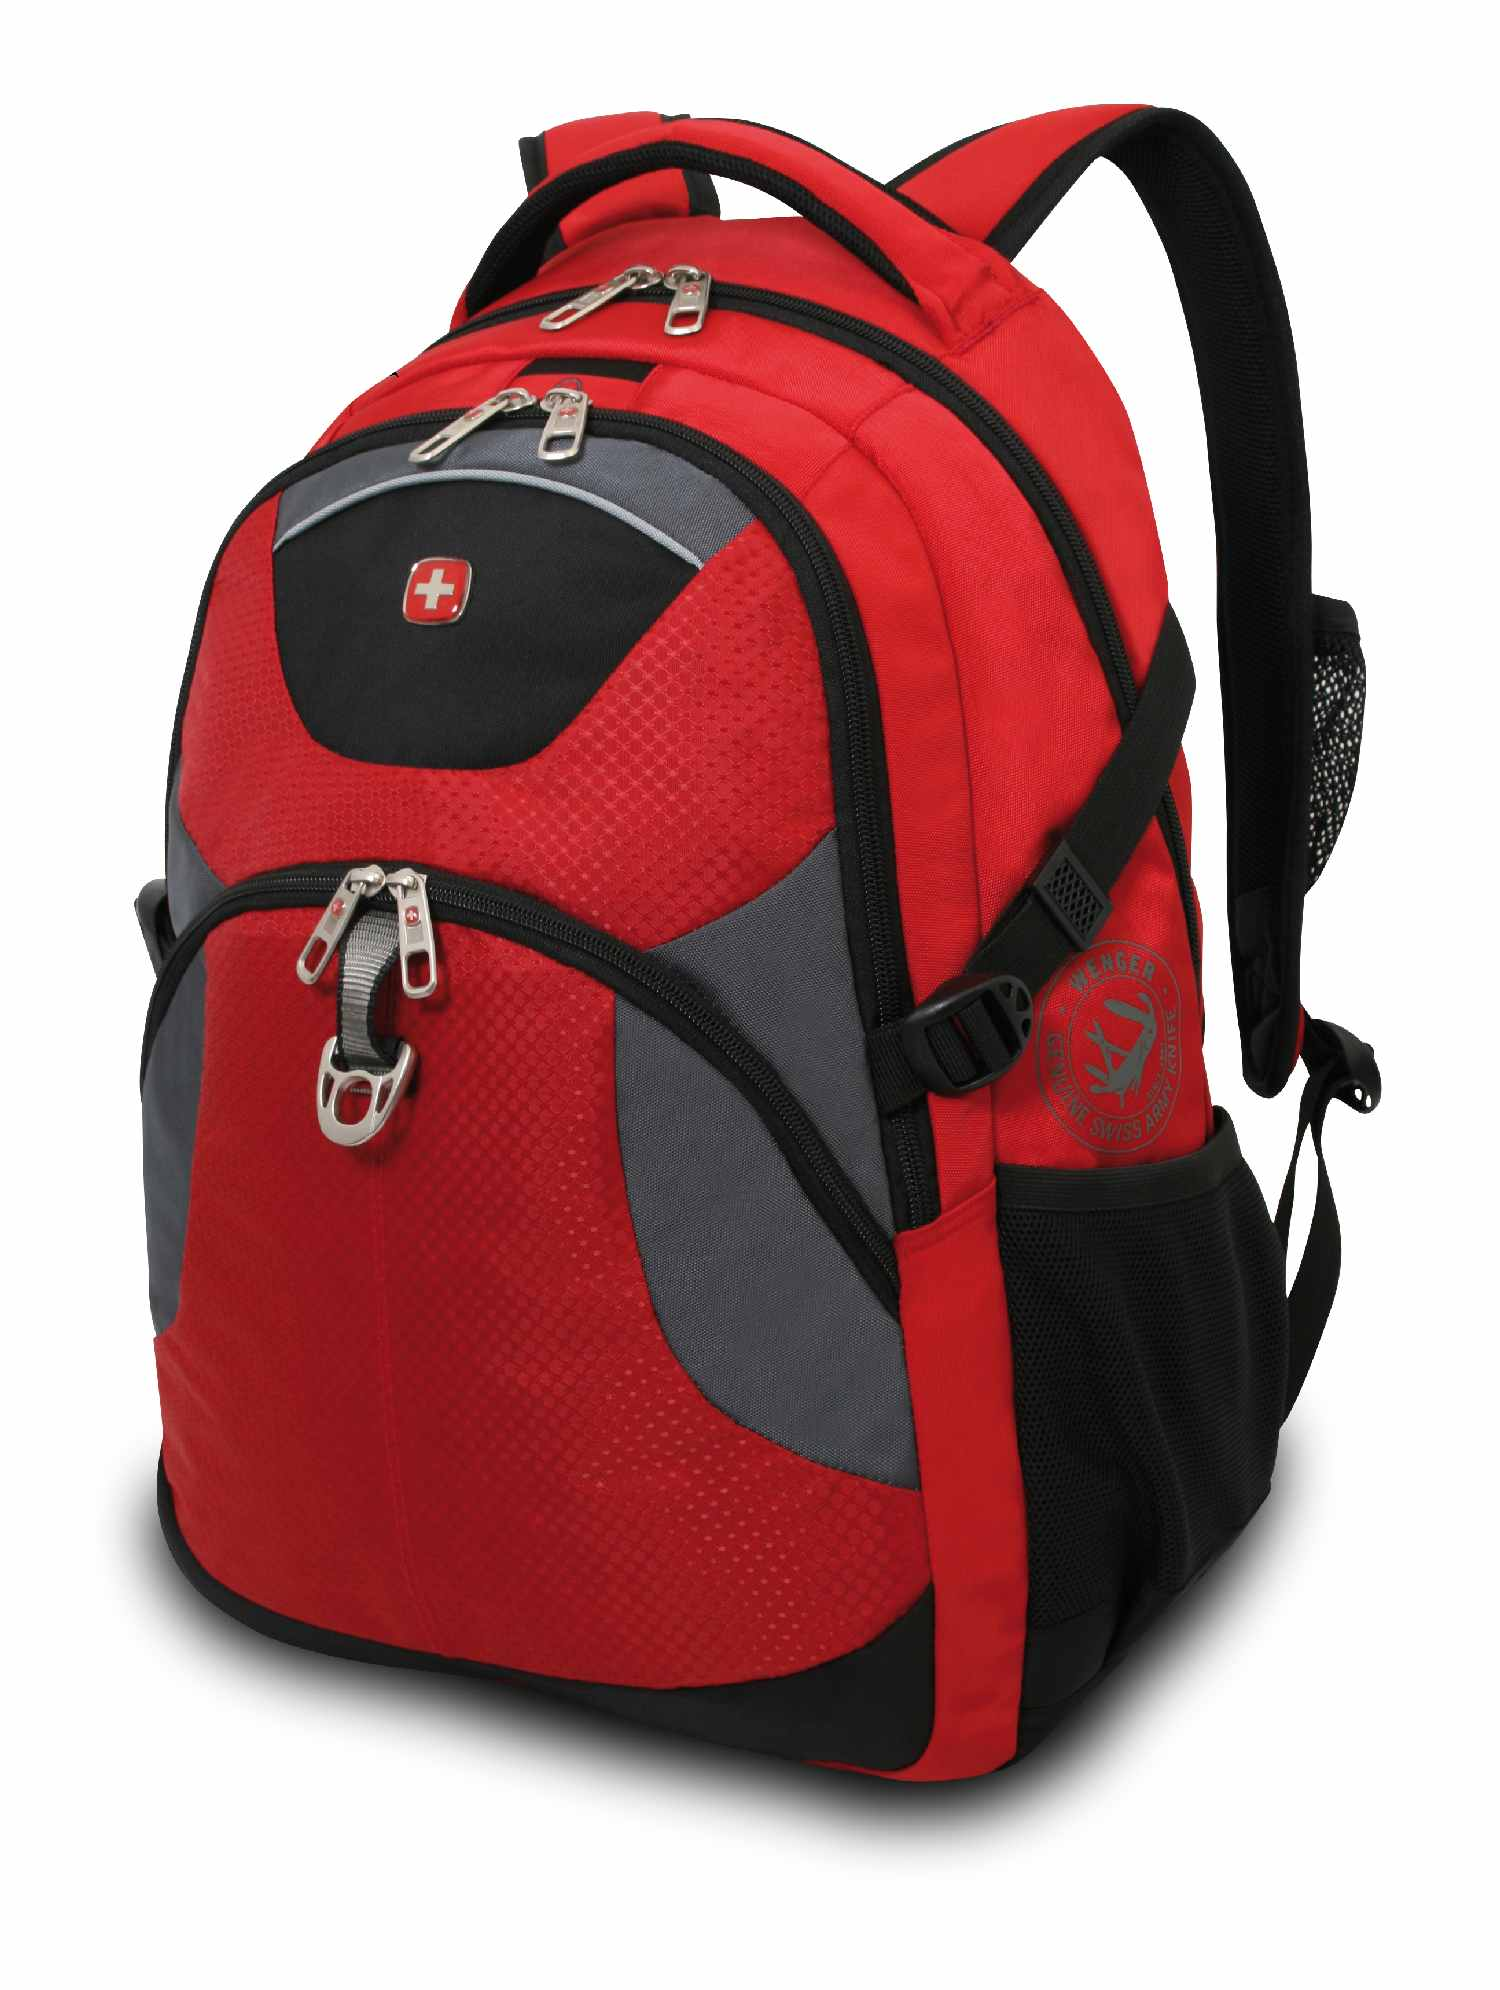 wenger rucksack mit laptoptasche bis 15 39 39 rot grau schwarz. Black Bedroom Furniture Sets. Home Design Ideas